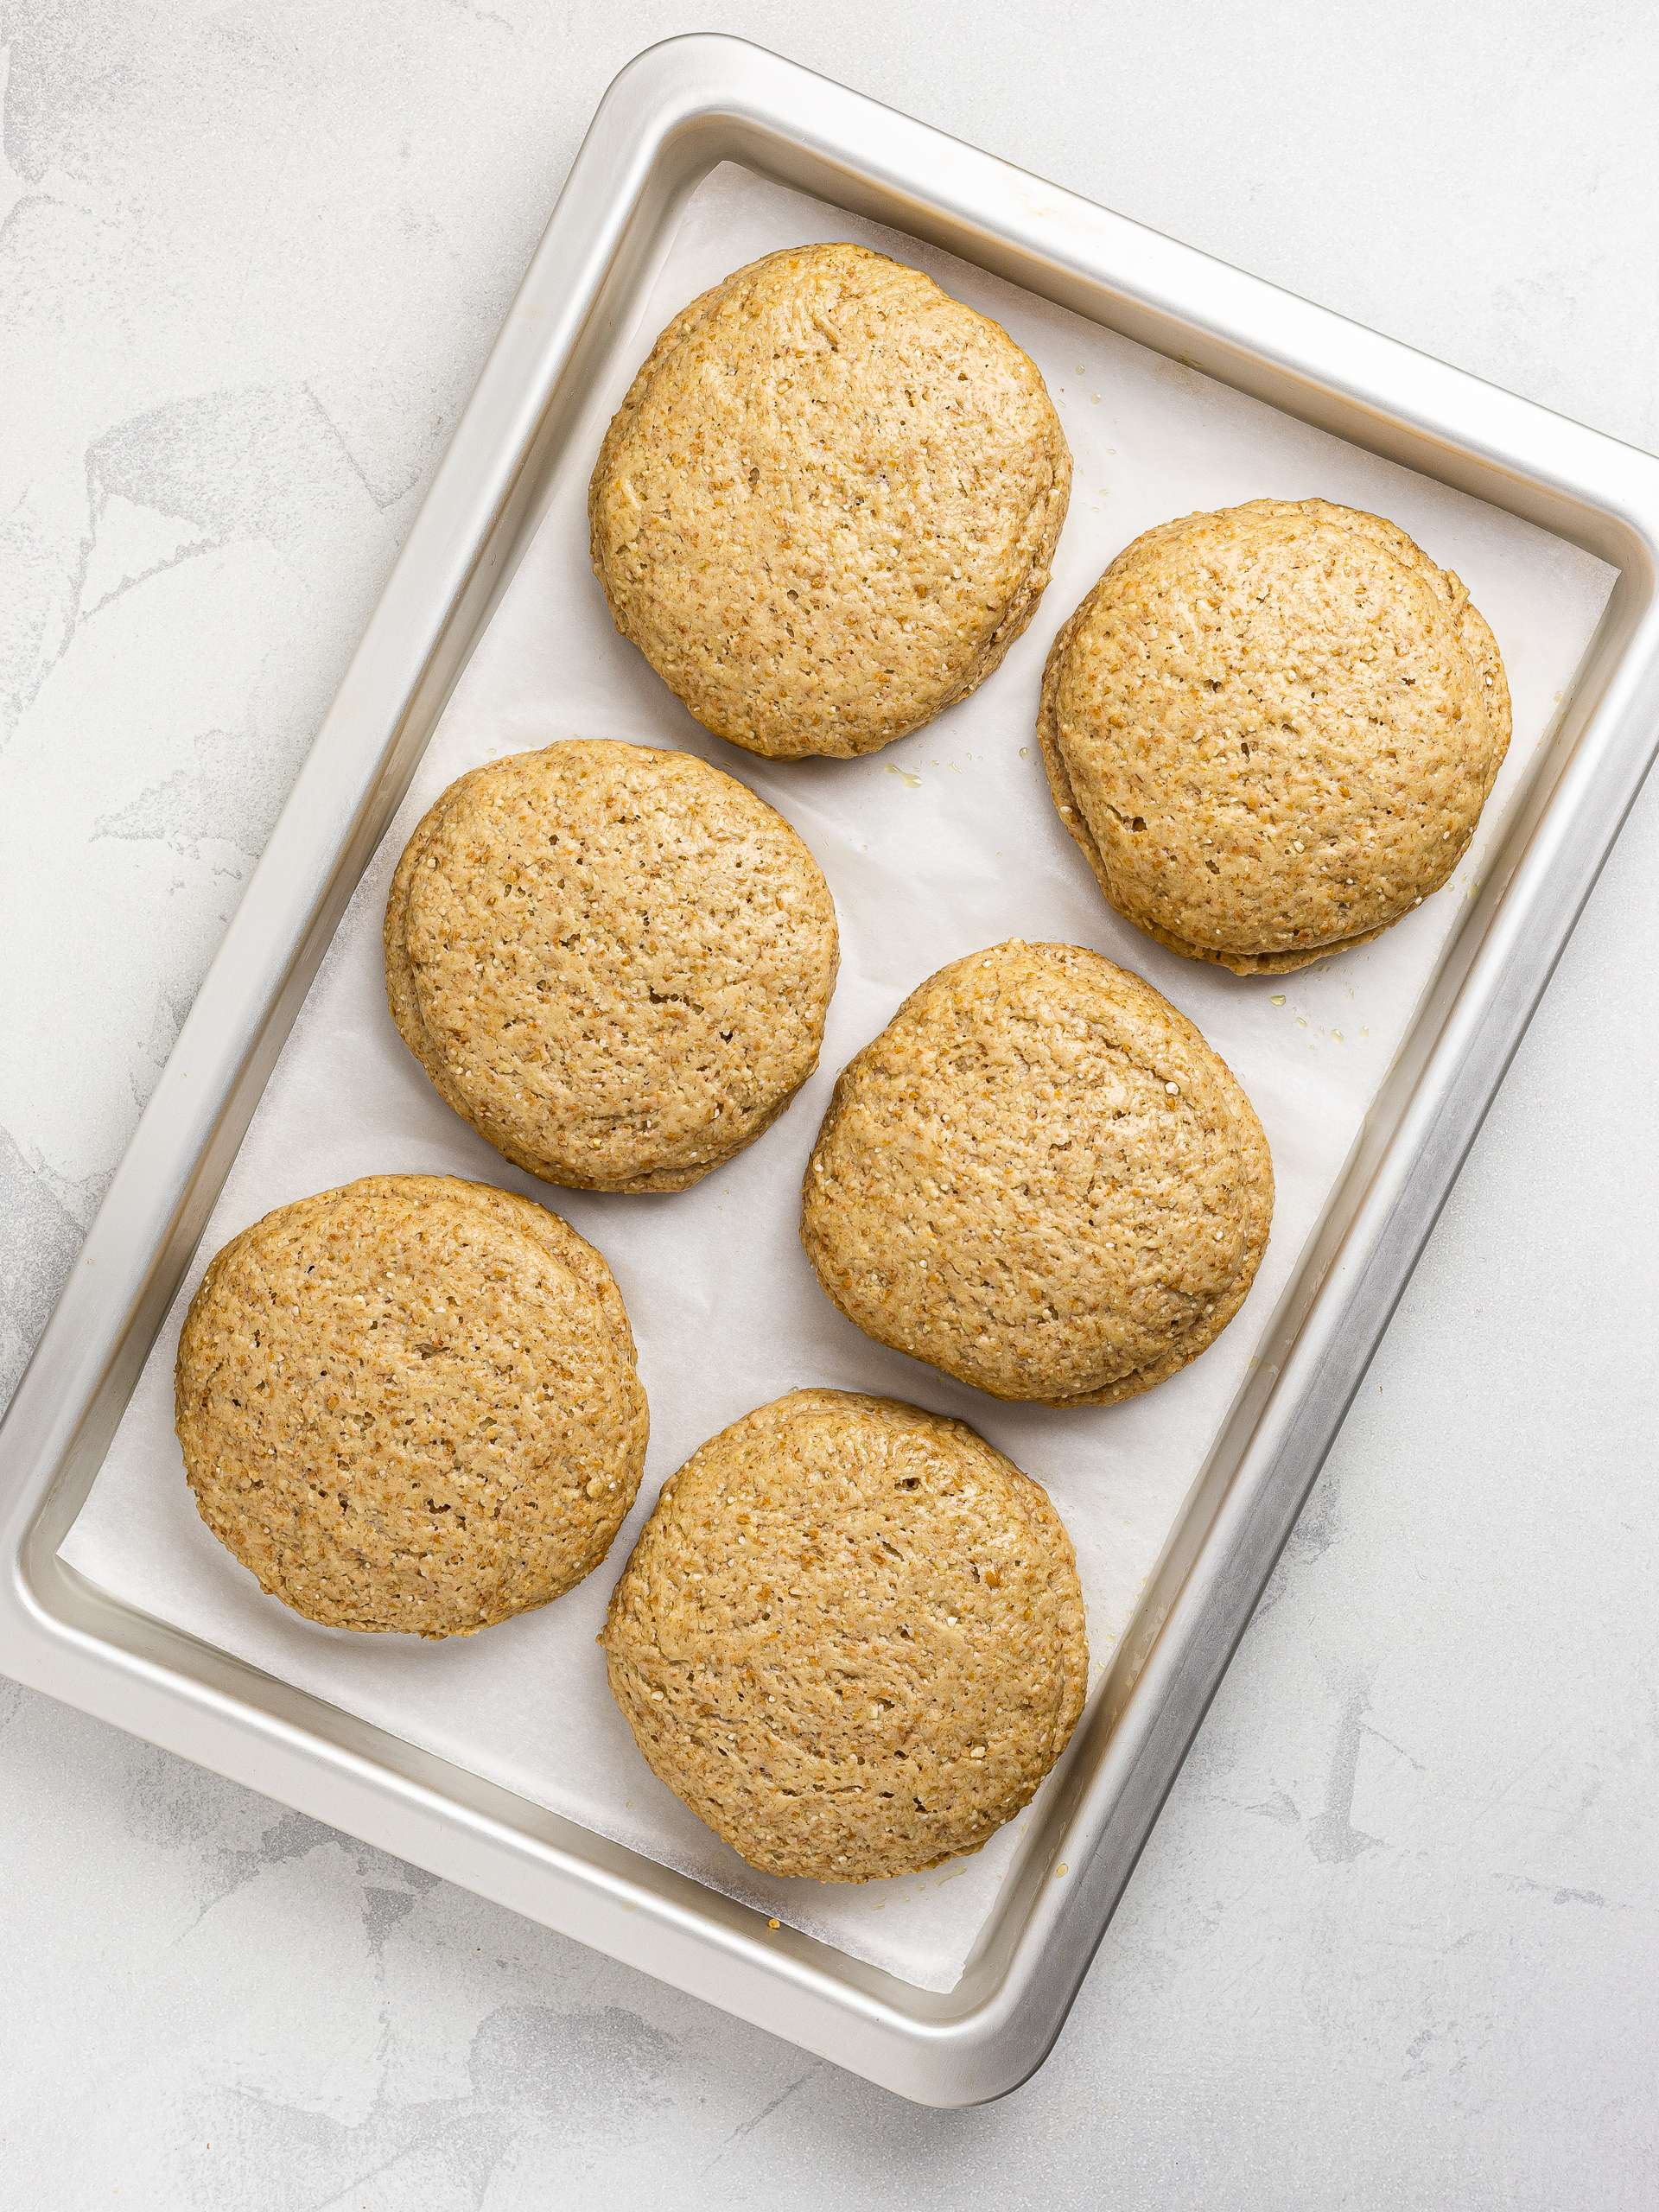 proved barley rusks in a tray